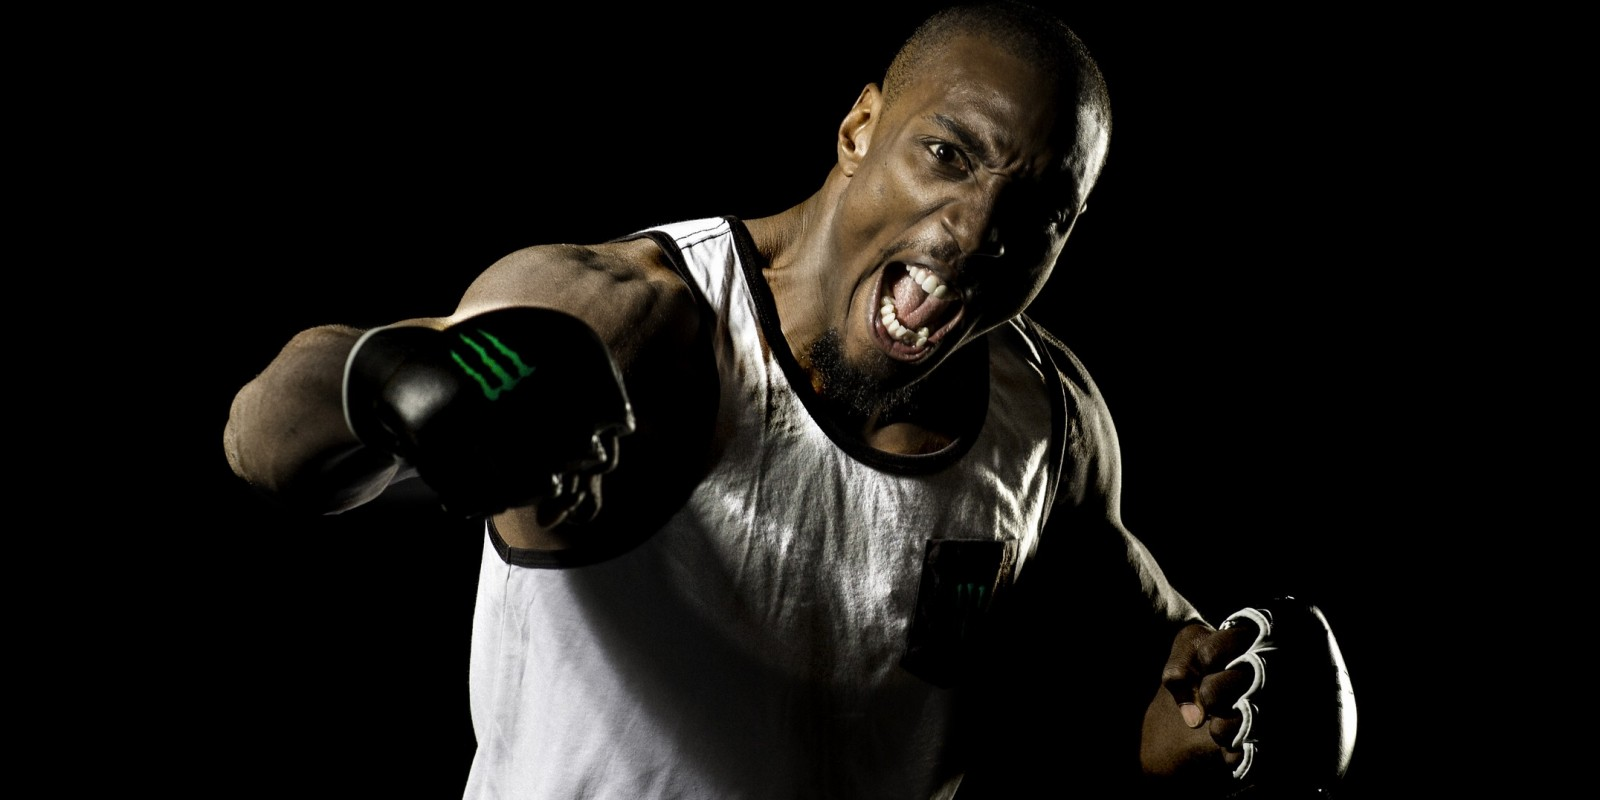 Phil Davis's photoshoots for the upcoming Bellator 163 fight